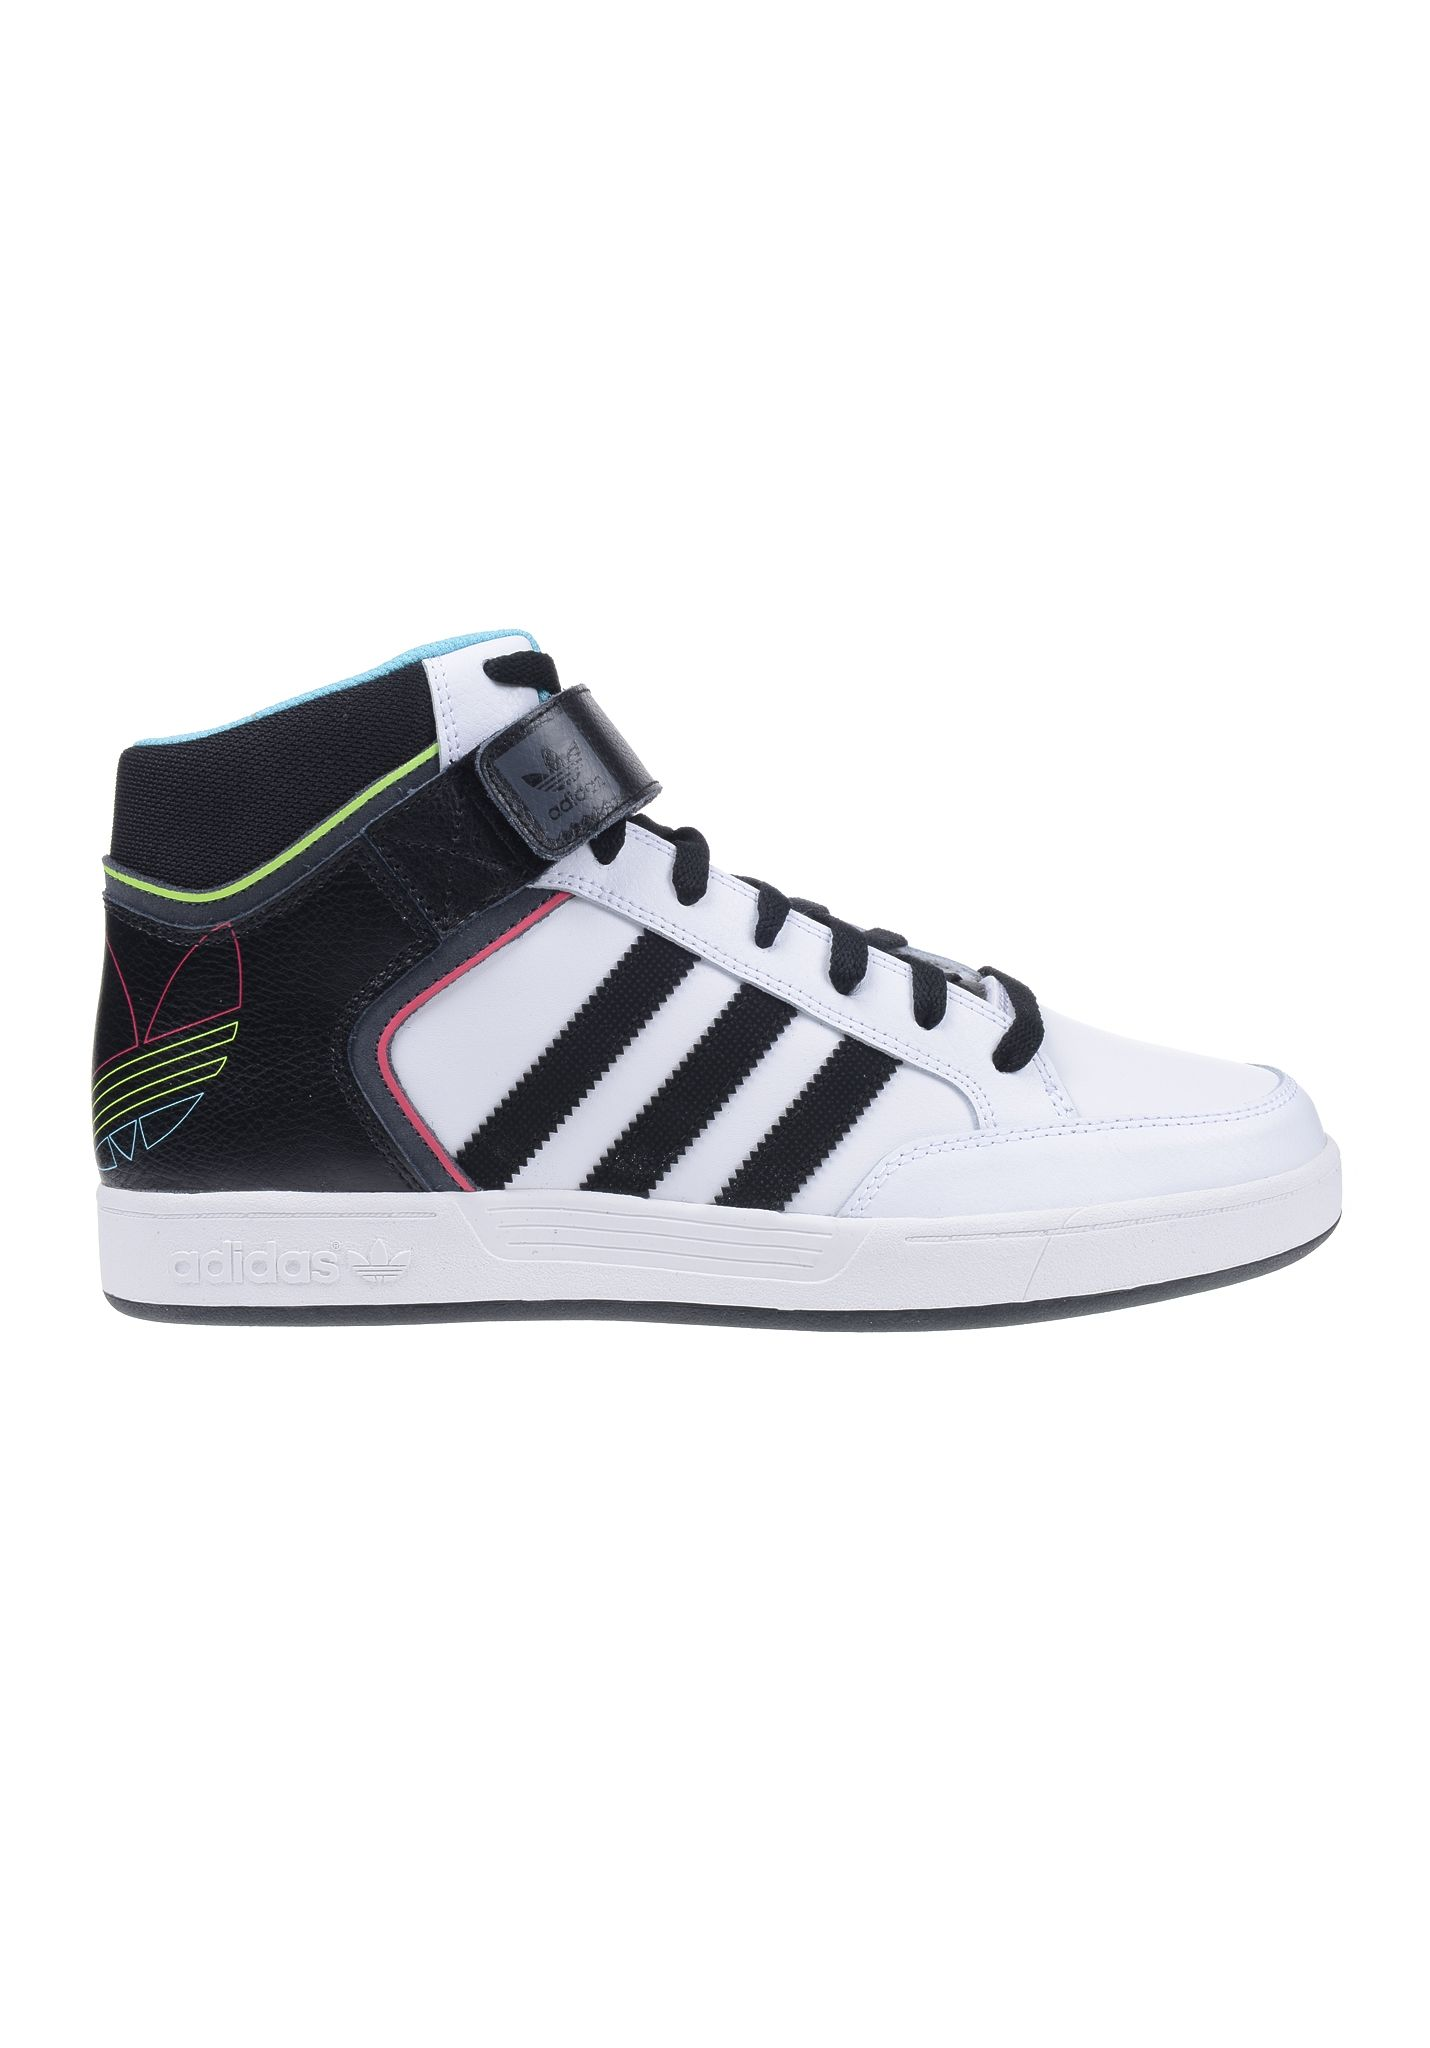 new style 6a4a6 93112 ADIDAS Varial Mid Skateboarding - Sneakers for Men - White - Planet Sports